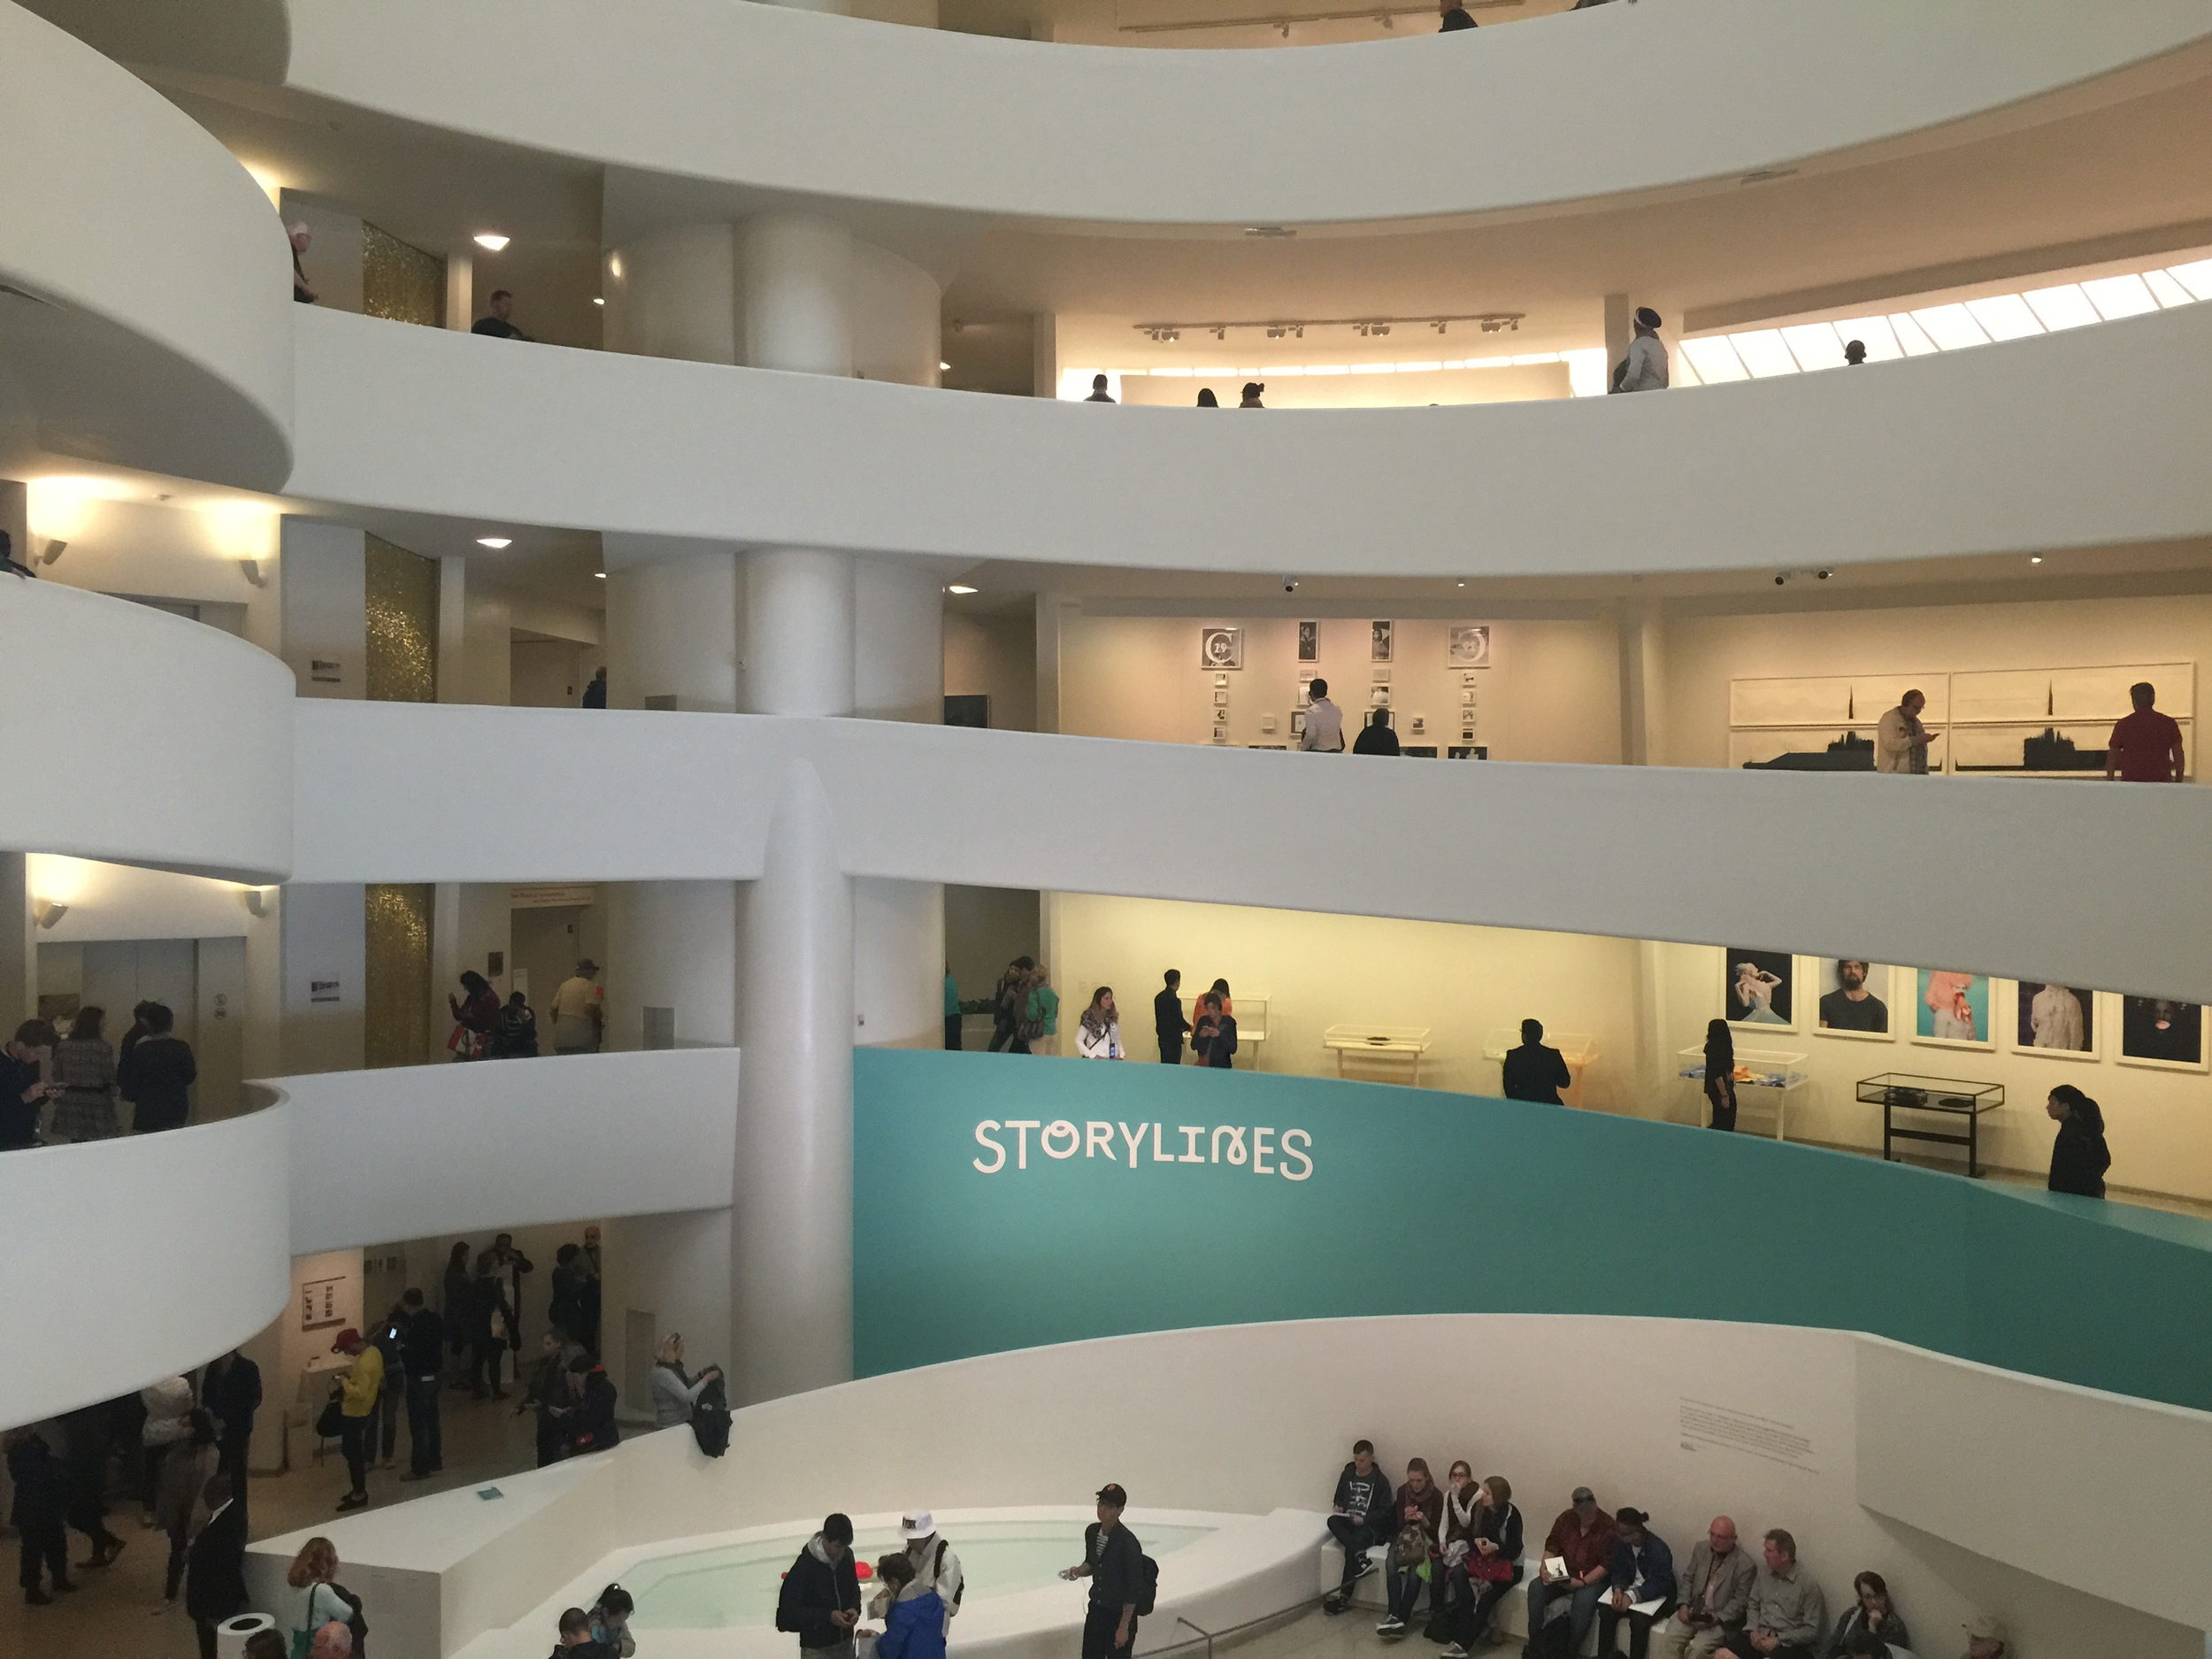 Inside the spaces of the Guggenheim Museum.